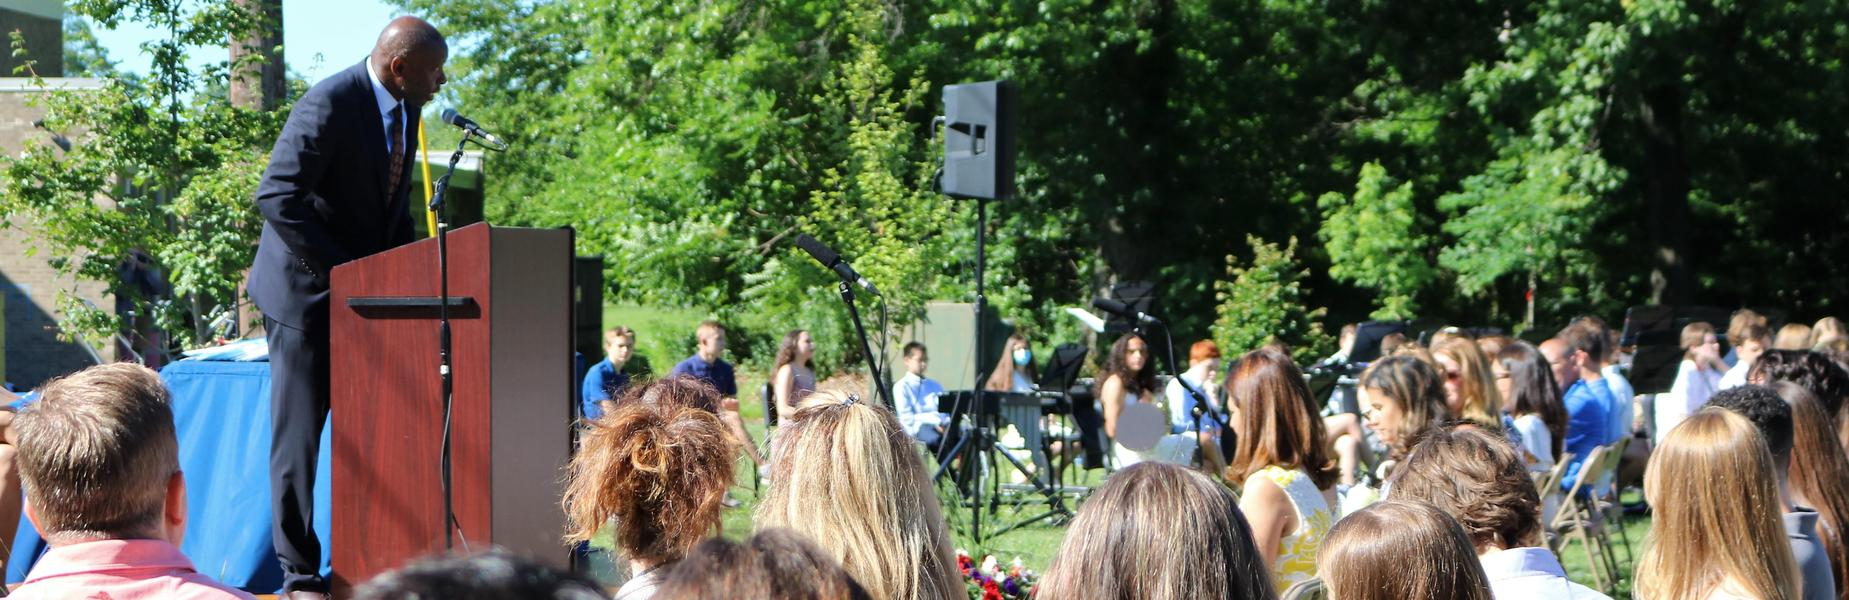 Photo of Roosevelt asst principal Keith Brunson addressing 8th graders and families during promotion ceremony